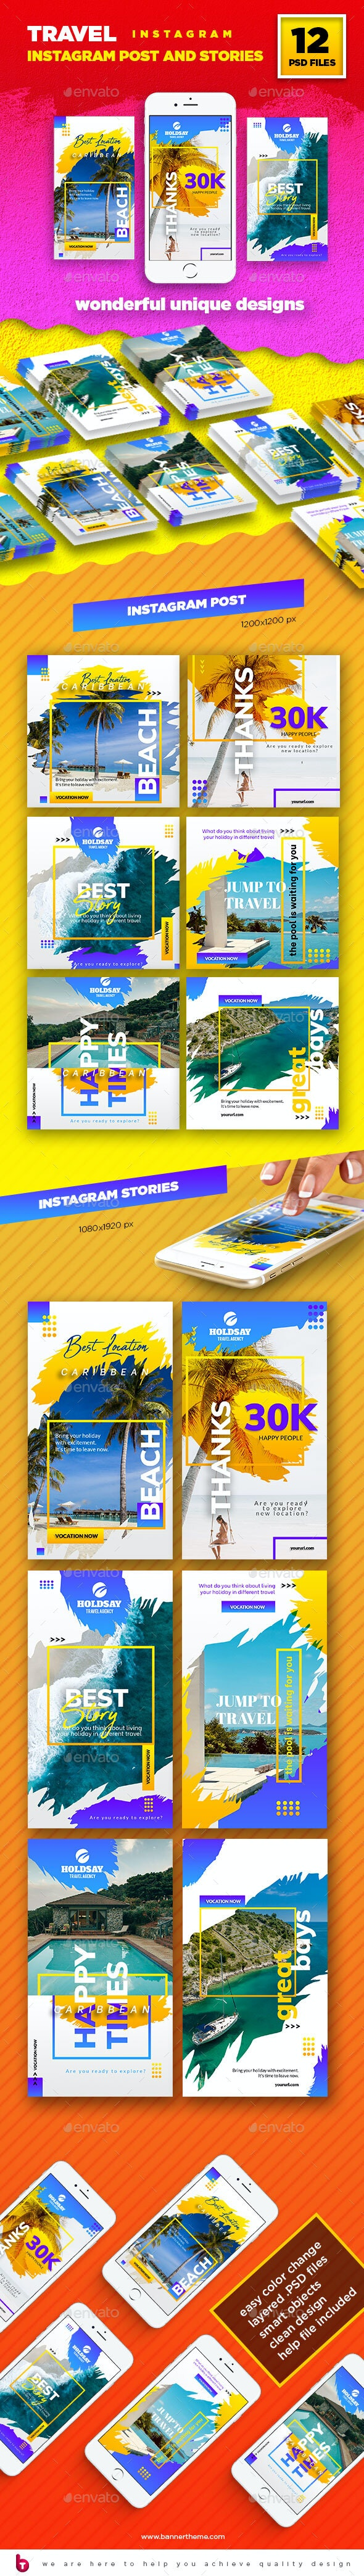 Travel Instagram Post and Stories - Social Media Web Elements